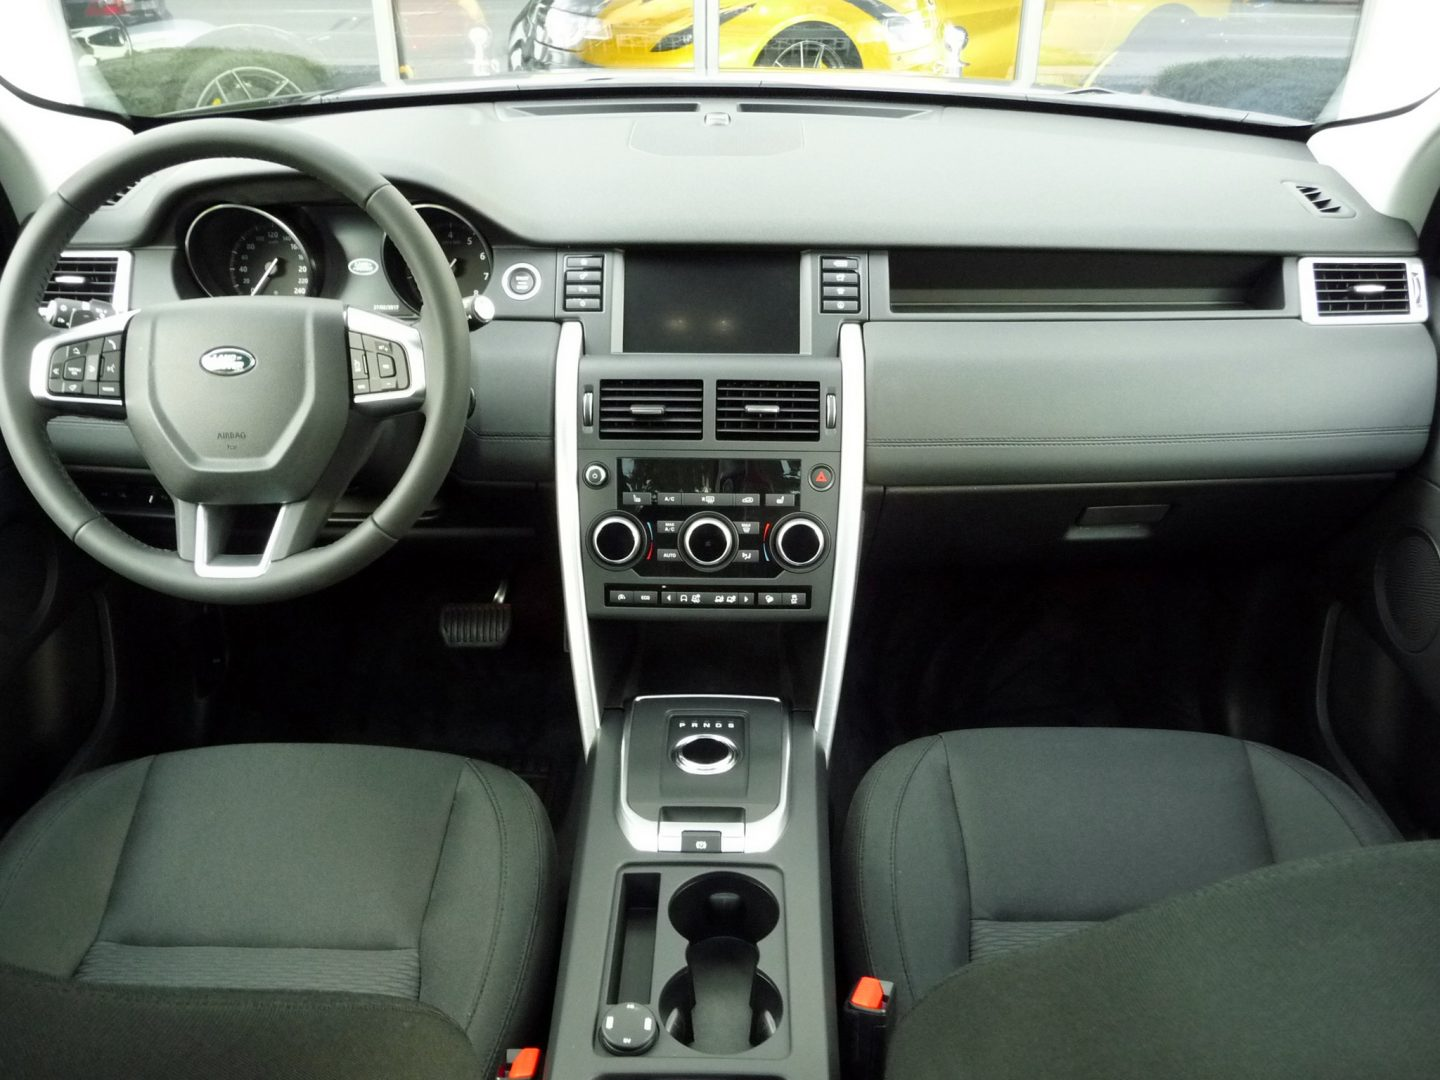 AIL Land Rover DISCOVERY SPORT Si4 SE PANORAMA  1